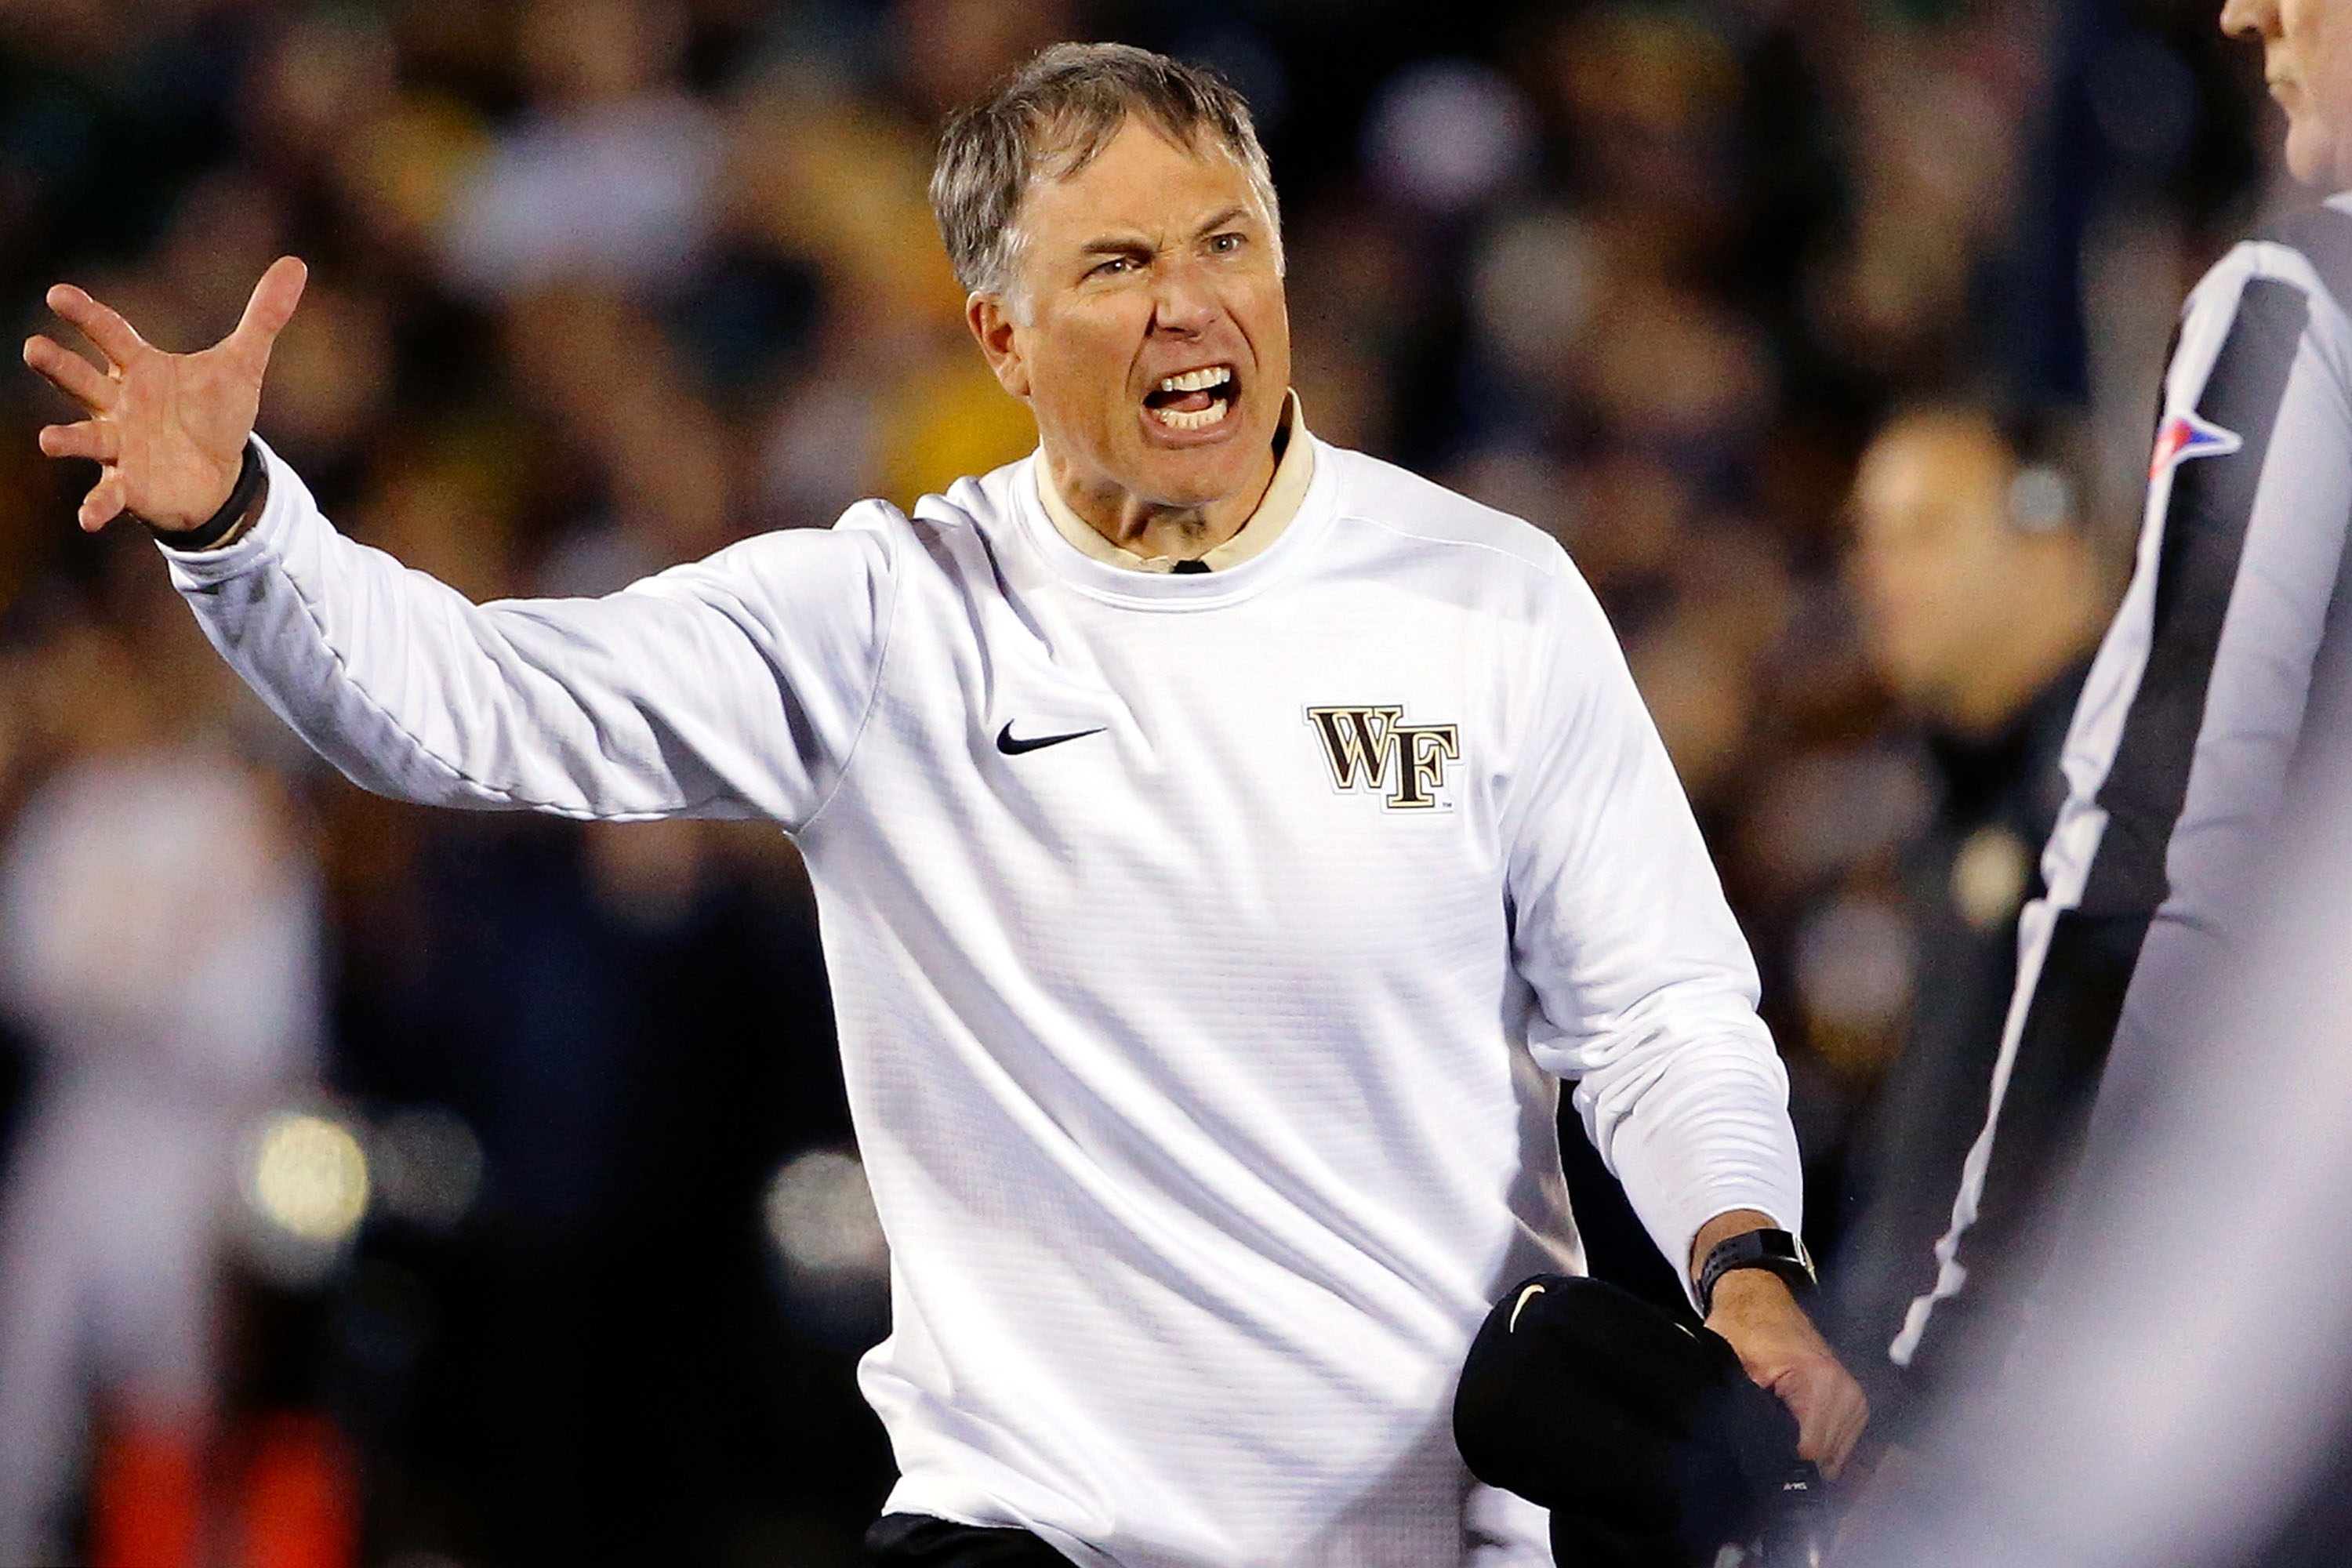 Wake Forest coach and Youngstown native Dave Clawson. Photo by Jon Durr/Getty Images)  (Photo by Jon Durr/Getty Images)